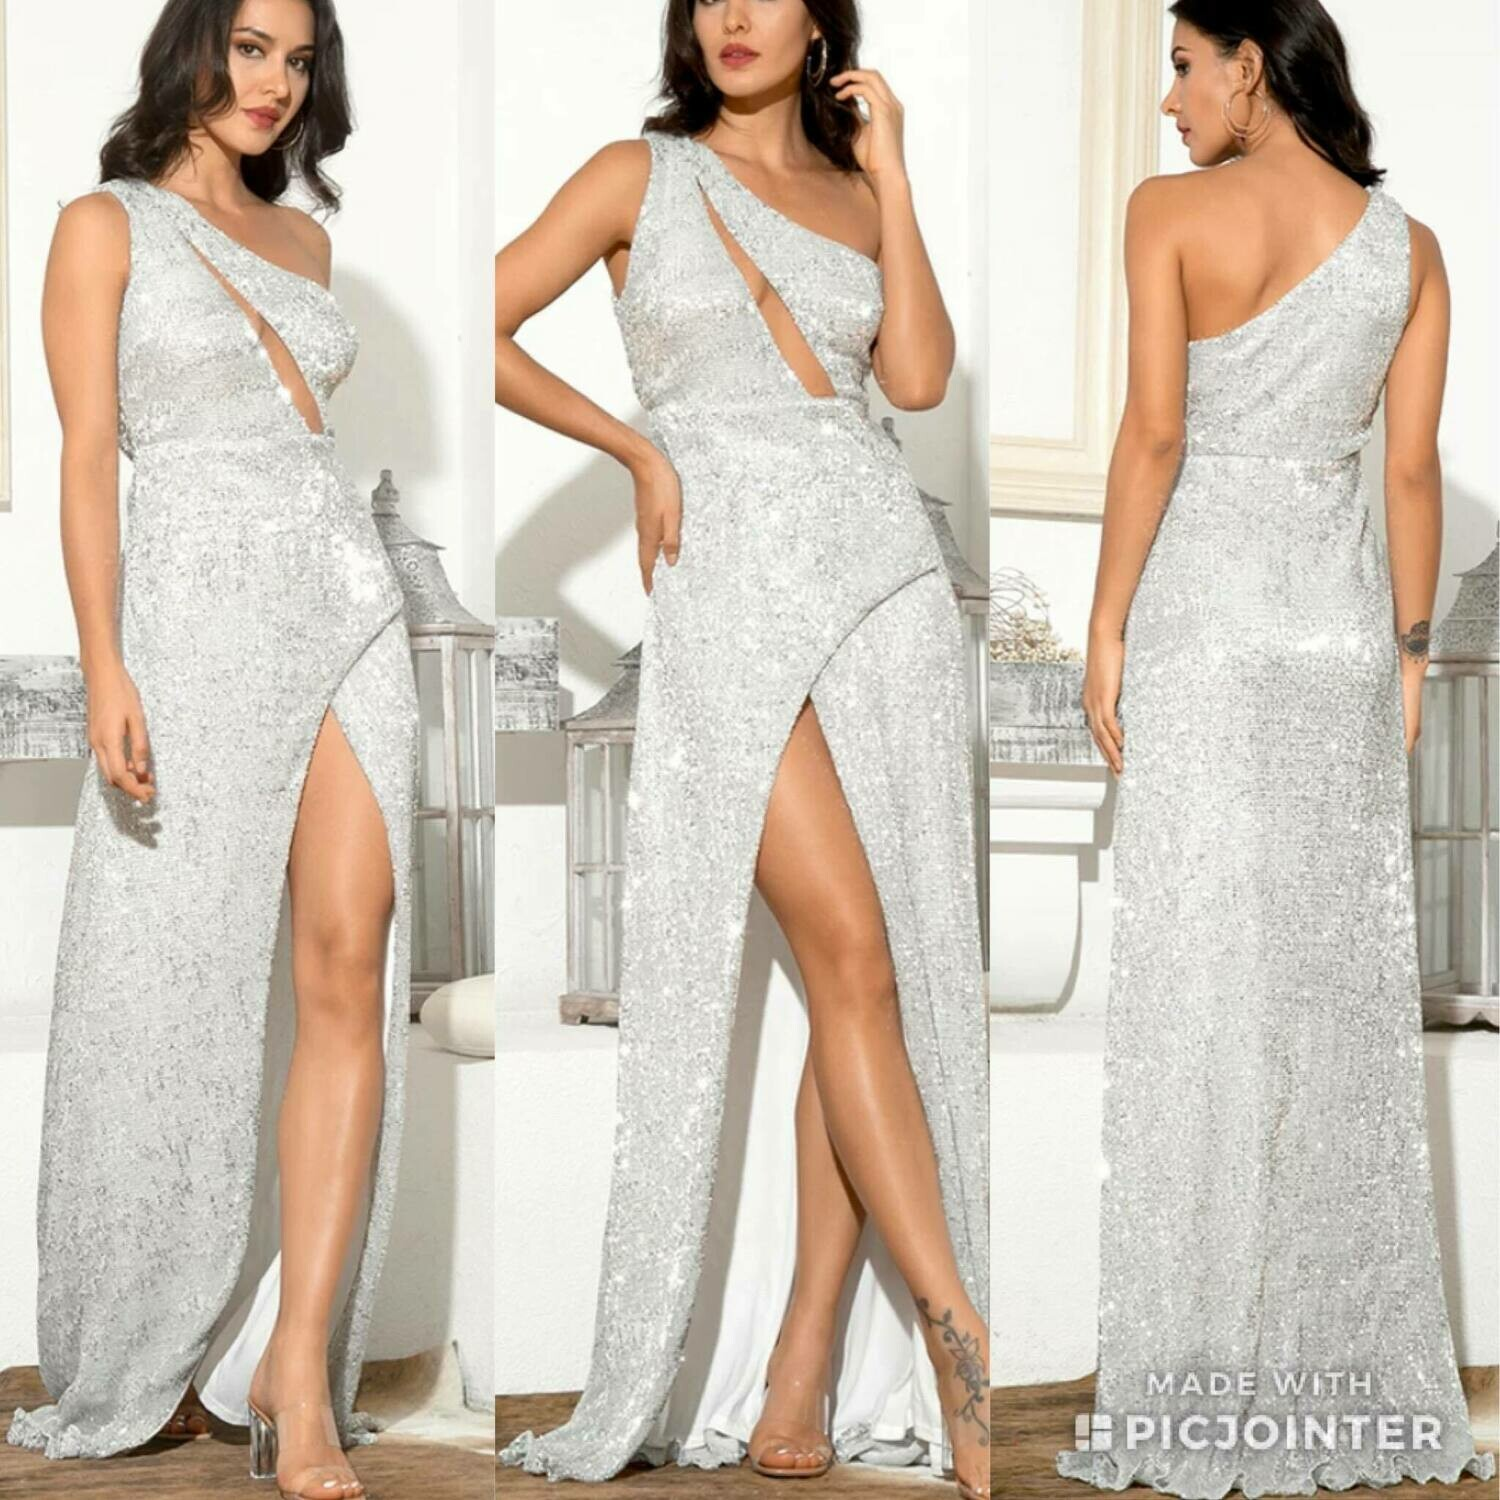 silver sequin dress with slit